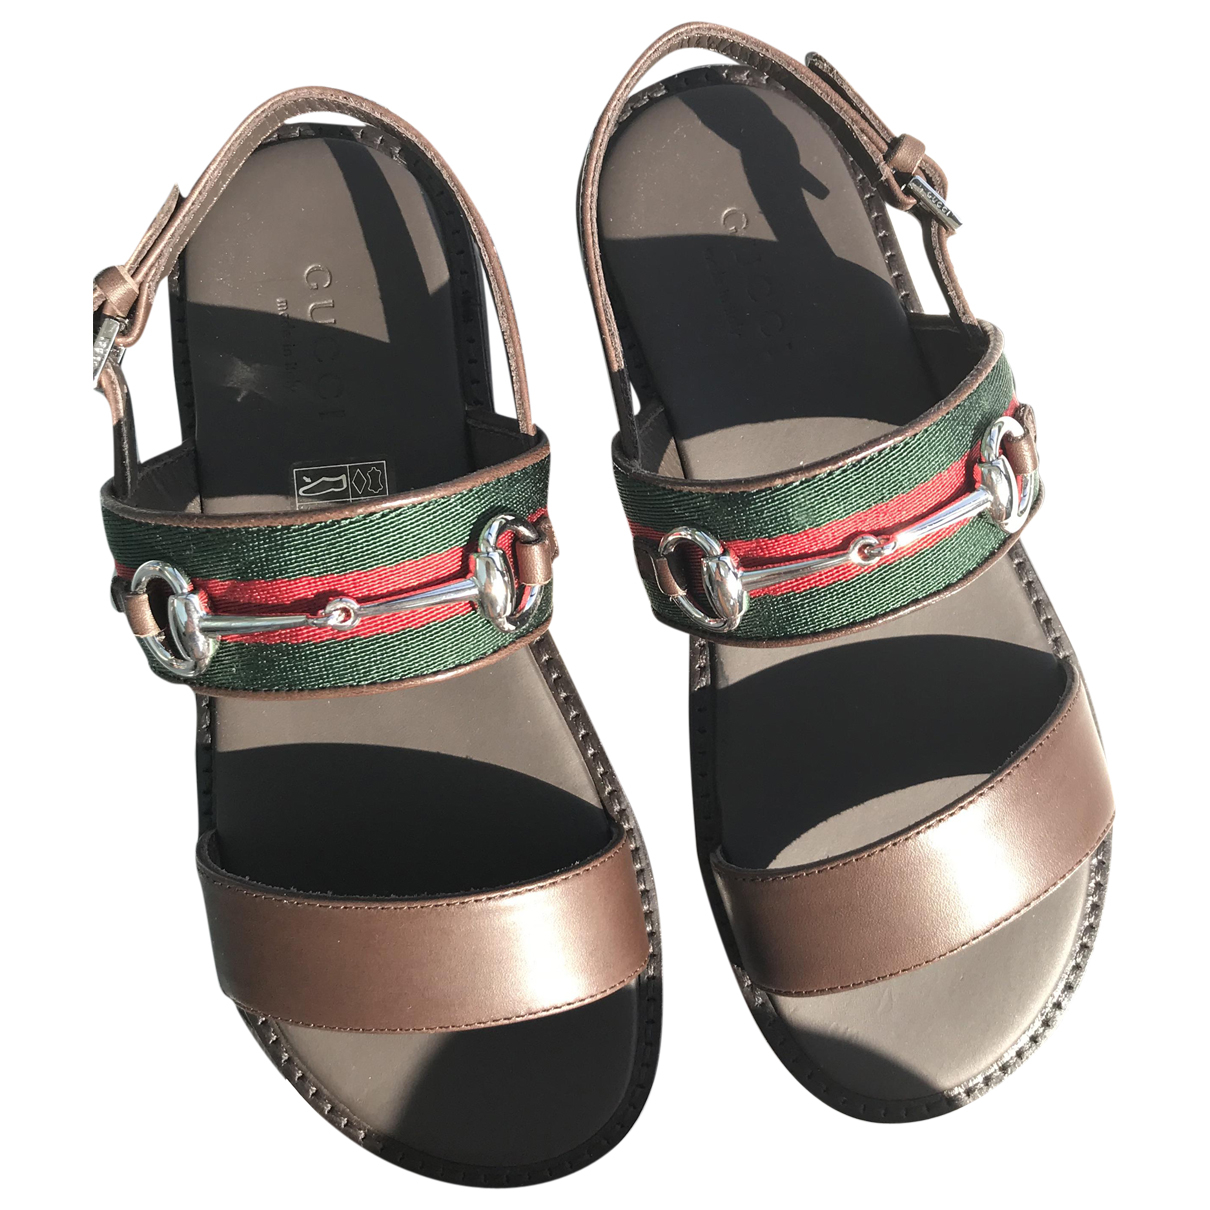 Gucci N Brown Leather Sandals for Kids 31 FR